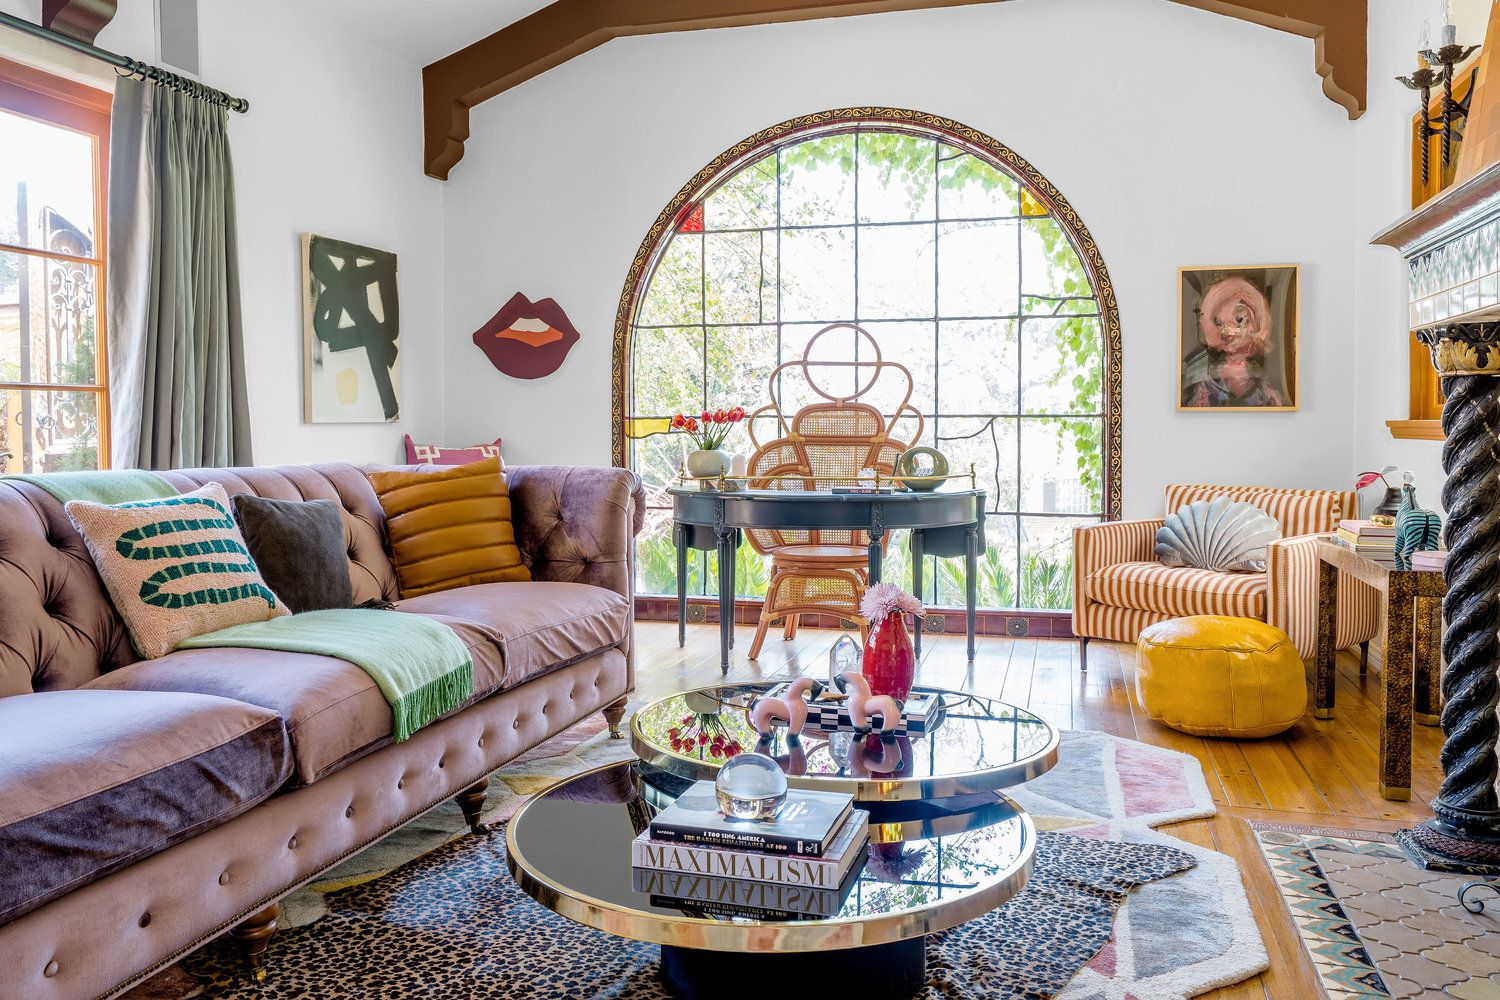 11 Eclectic Design and Home Decor Ideas